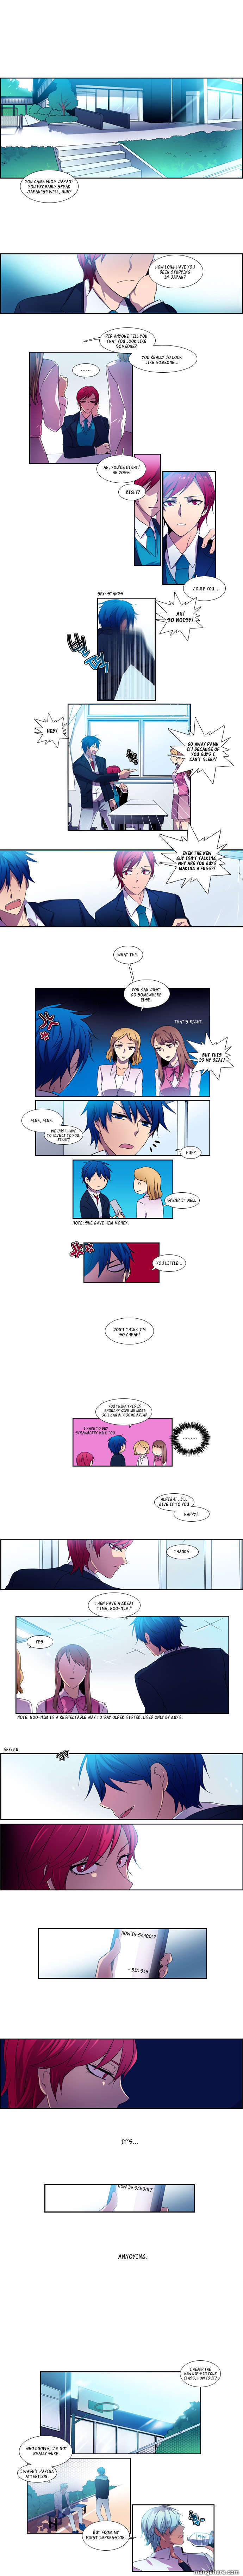 Wonted 2 Page 1